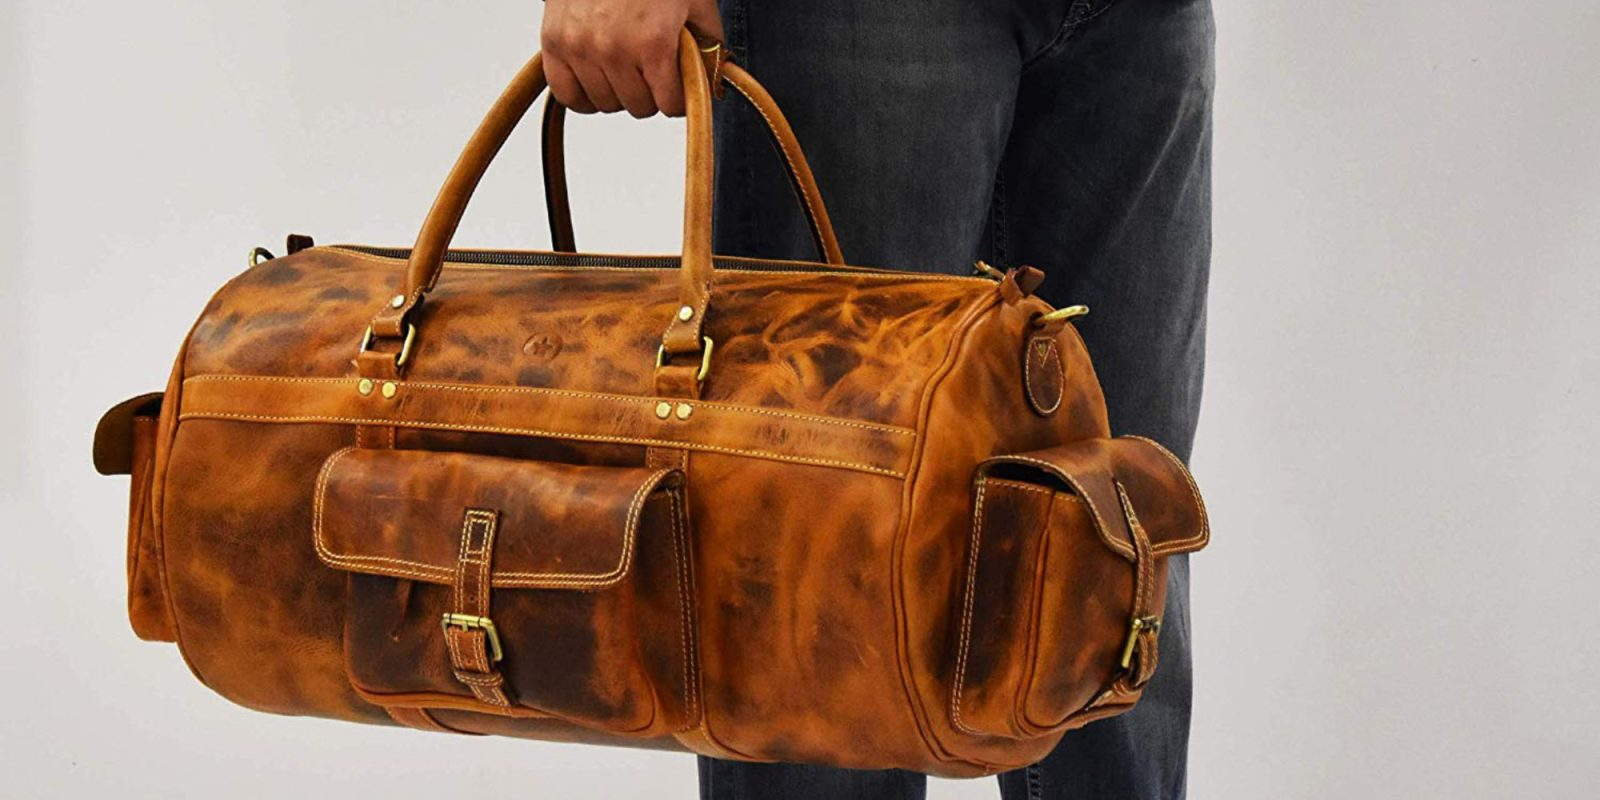 Slash 40% off this highly-rated leather duffel bag at $80 Prime shipped